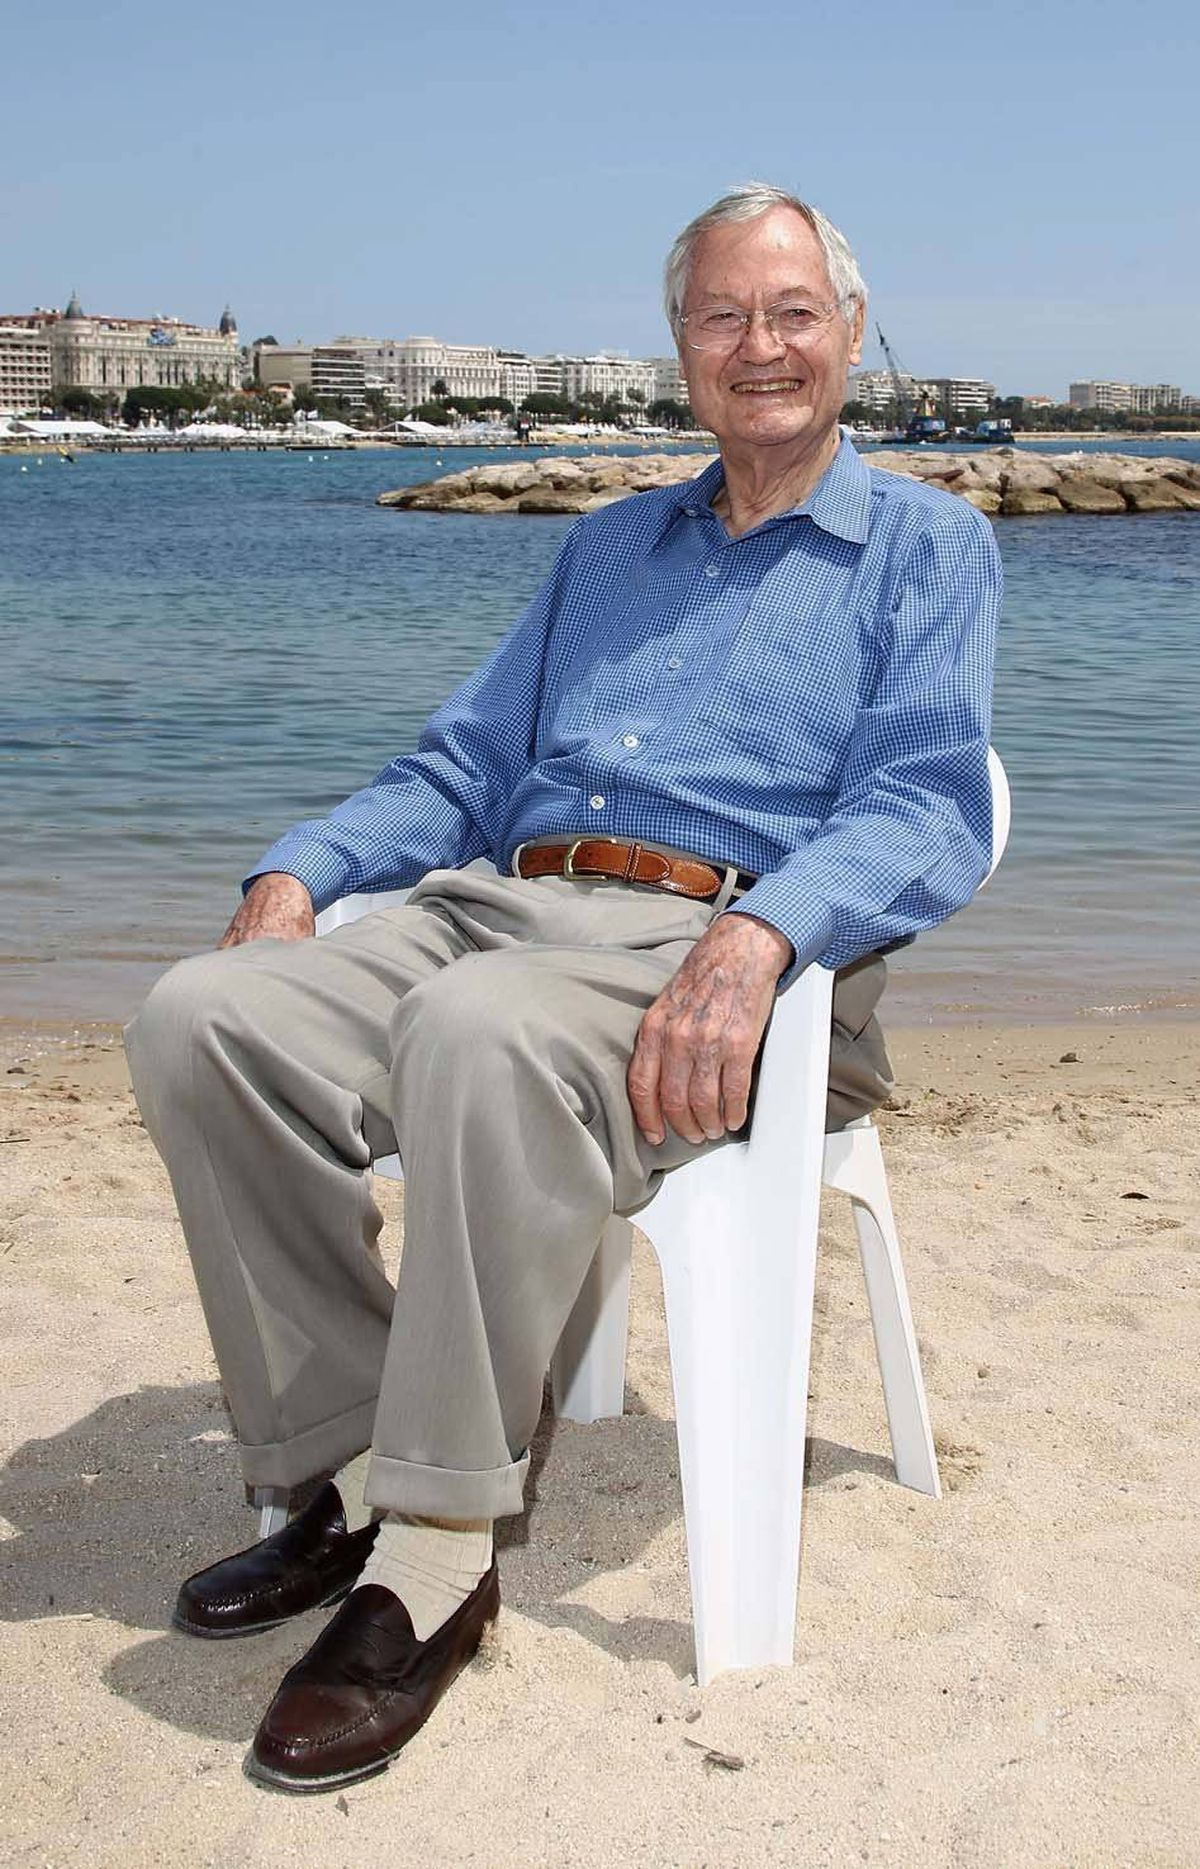 Famed director Roger Corman got up early and nabbed a great spot on the beach at the Cannes Film Festival on Wednesday.